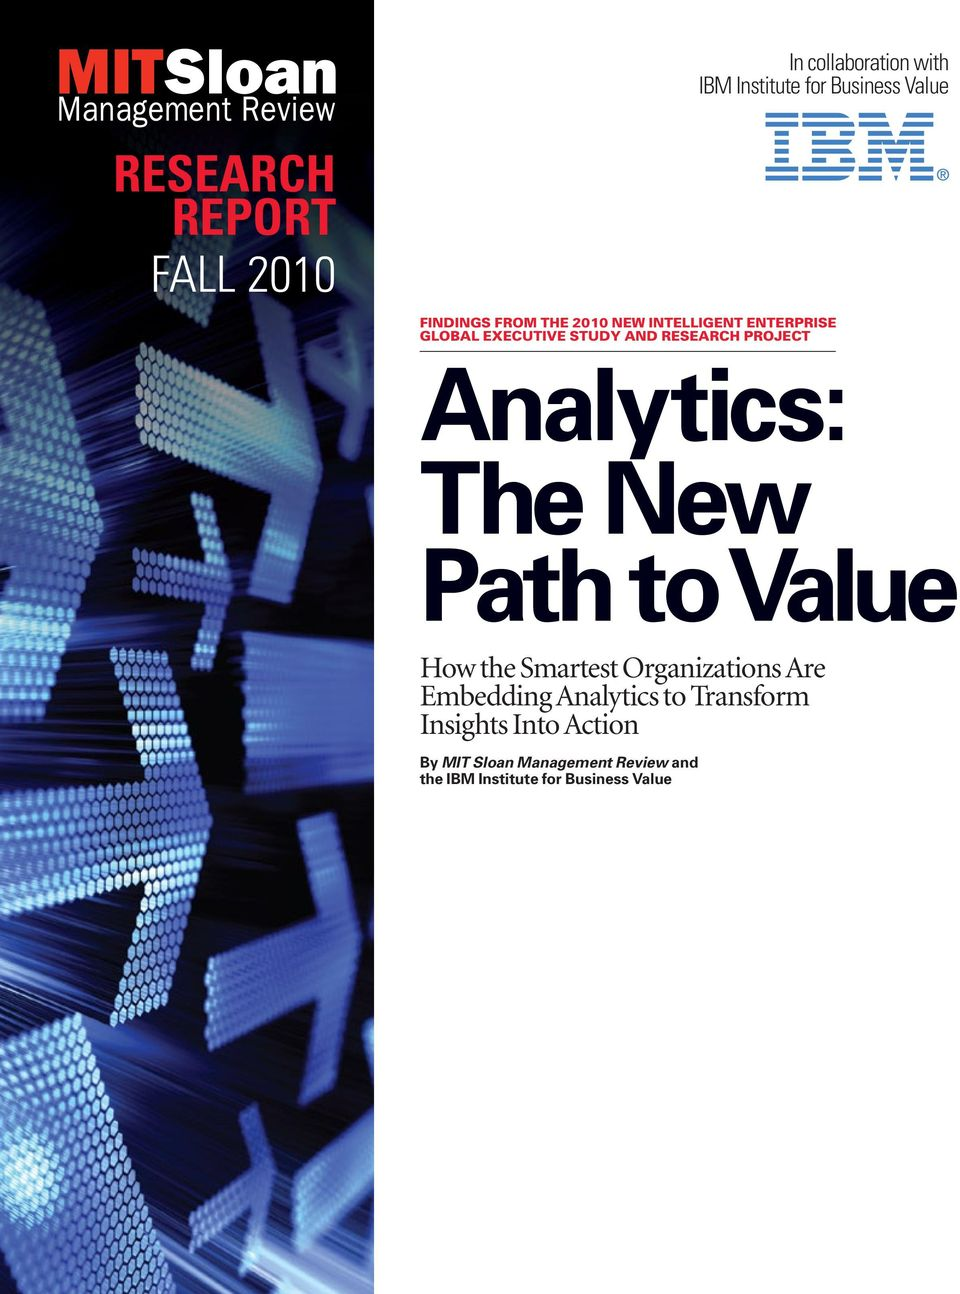 Analytics: The New Path to Value How the Smartest Organizations Are Embedding Analytics to